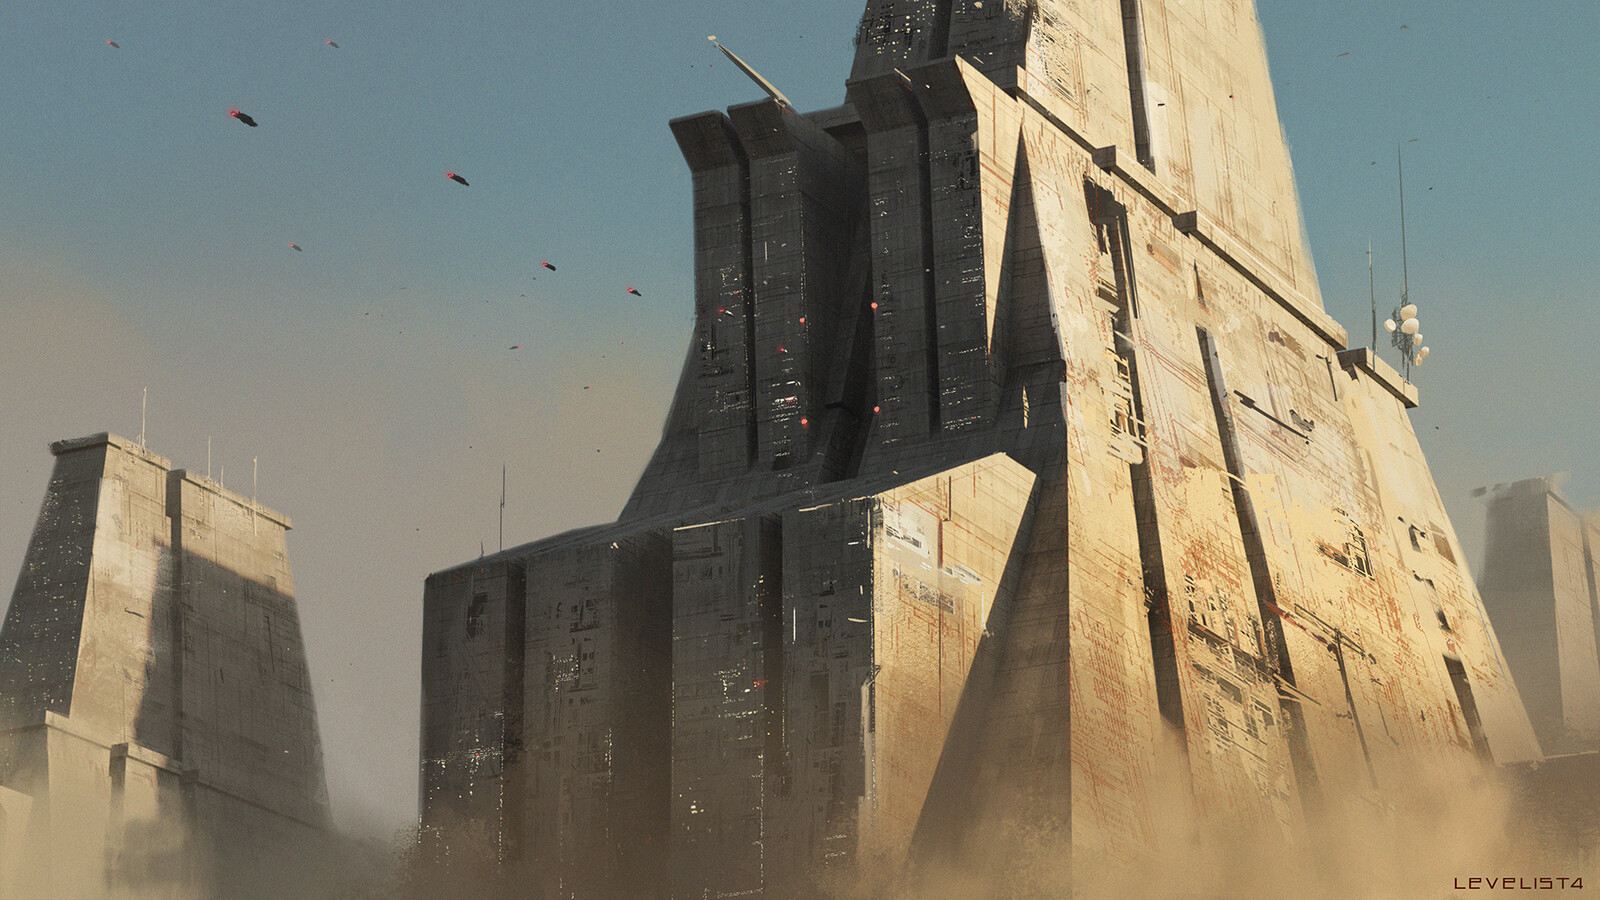 Megastructures inspired by Paul Chadeisson